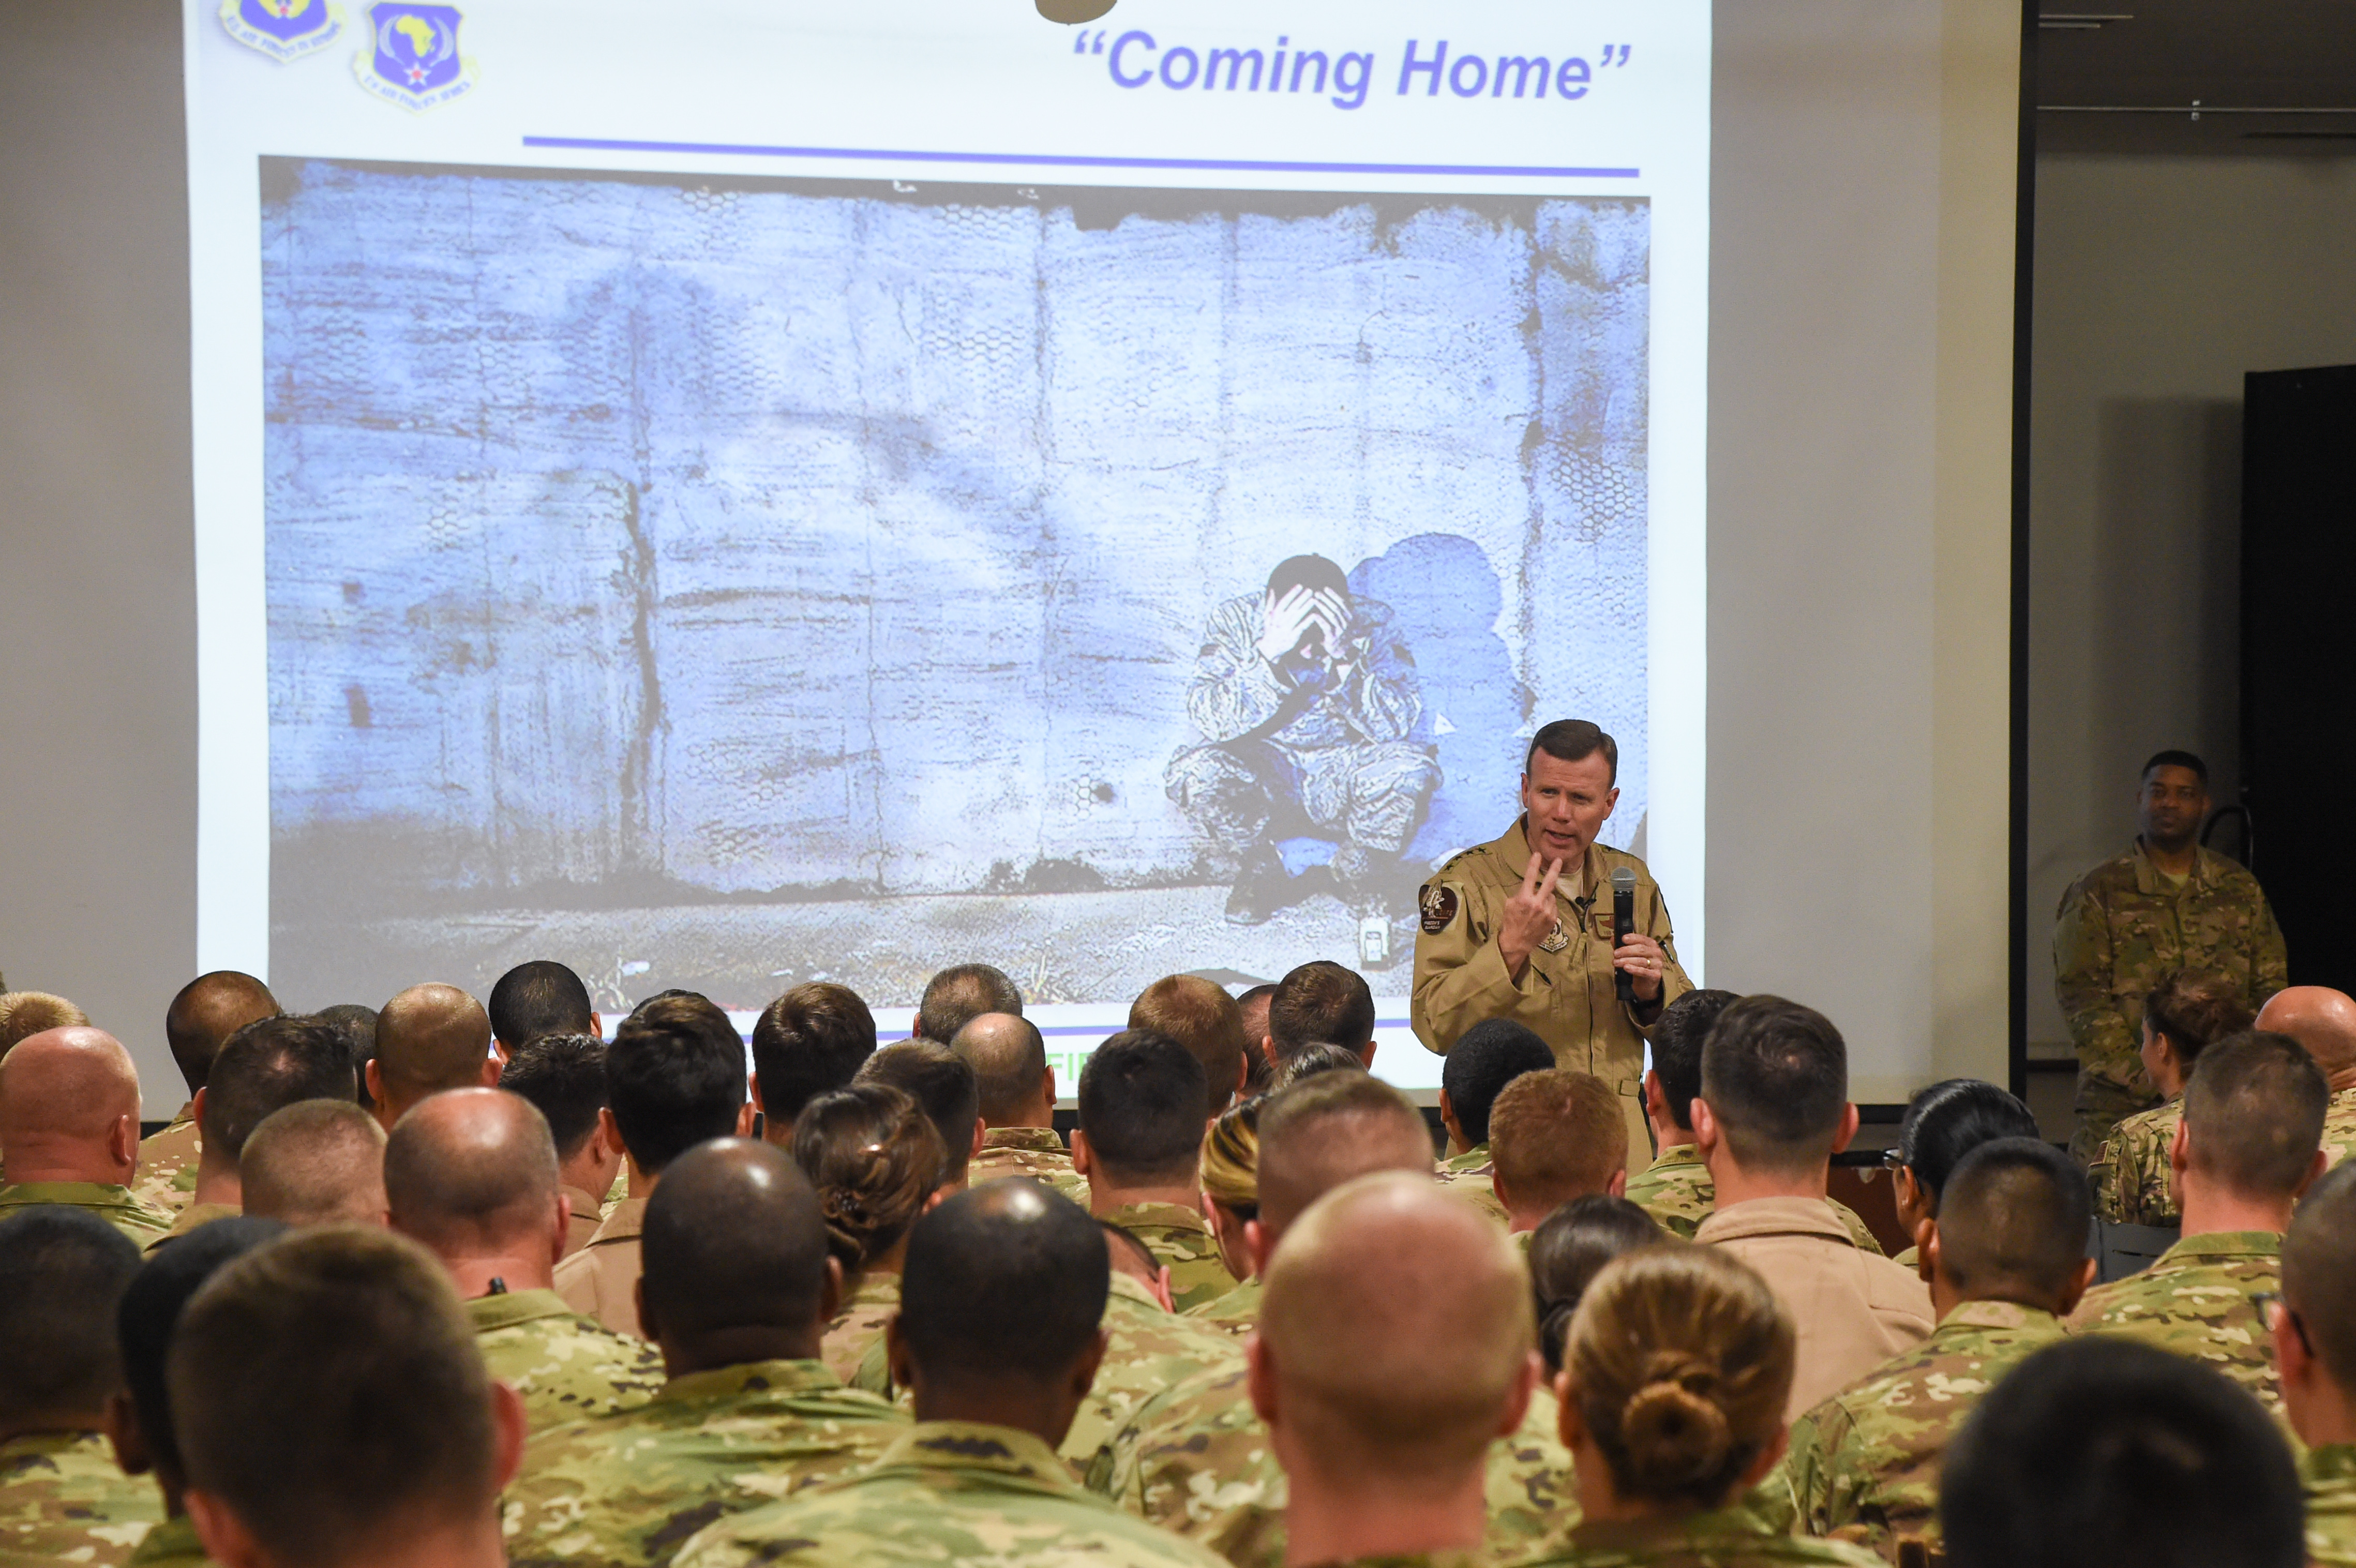 U.S. Air Force Gen. Tod Wolters, commander of U.S. Air Forces in Europe and Air Forces Africa (USAFE-AFAFRICA), speaks with forward deployed Airmen assigned to the installation, and Combined Joint Task Force-Horn of Africa during his visit to Camp Lemonnier, Djibouti, Feb. 1, 2017. Wolters discussed the three command priorities: trust, teamwork, and training. Camp Lemonnier is one of USAFE-AFAFRICA's 114 geographically separated locations. (U.S. Air National Guard photo by Staff Sgt. Penny Snoozy)